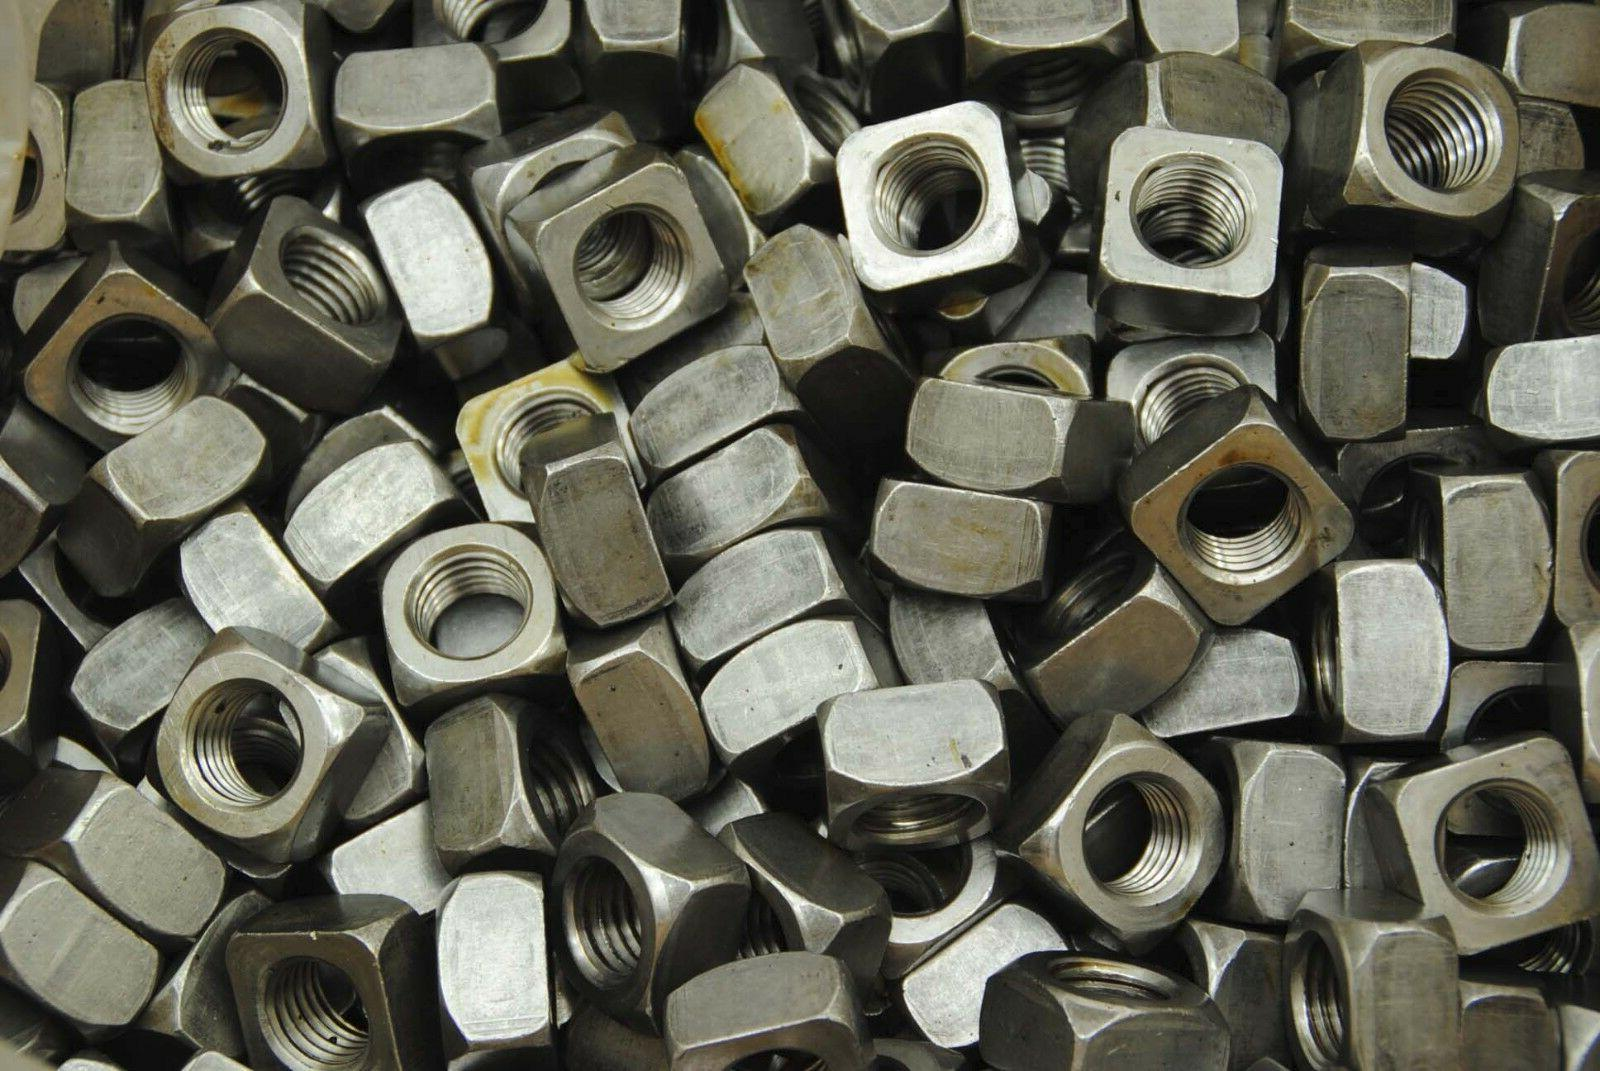 50 unplated 3 4 10 square nuts